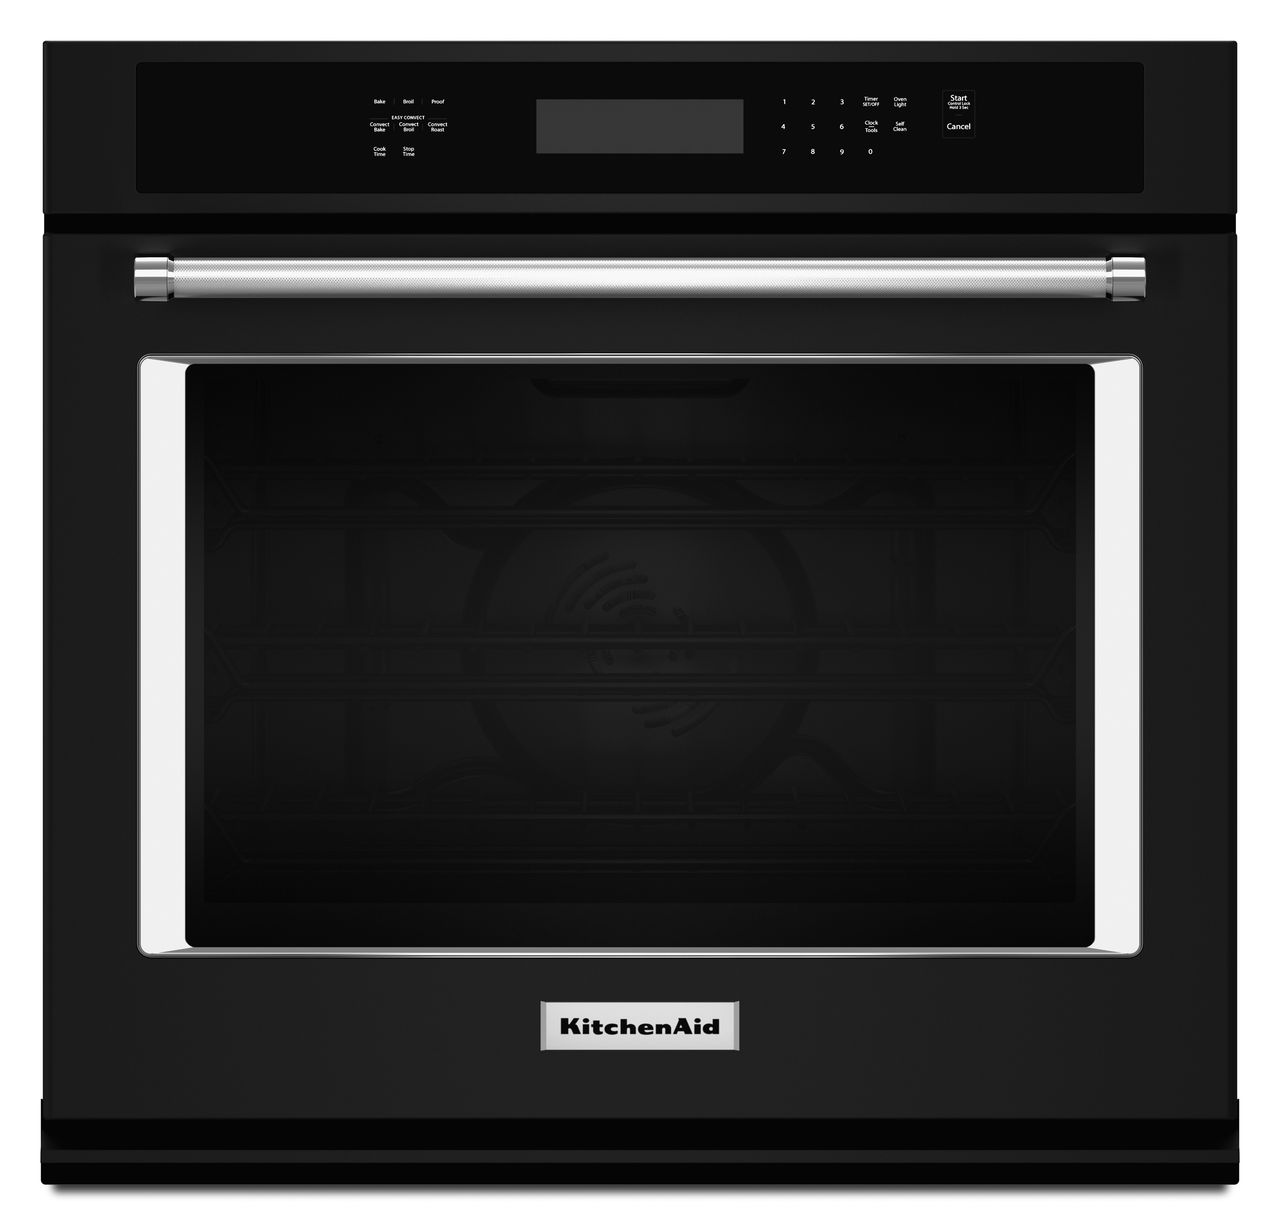 Kitchenaid 27 Built In Electric Single Wall Oven Black Stainless Fan Conversion For Suburban Steel Kose507ebs